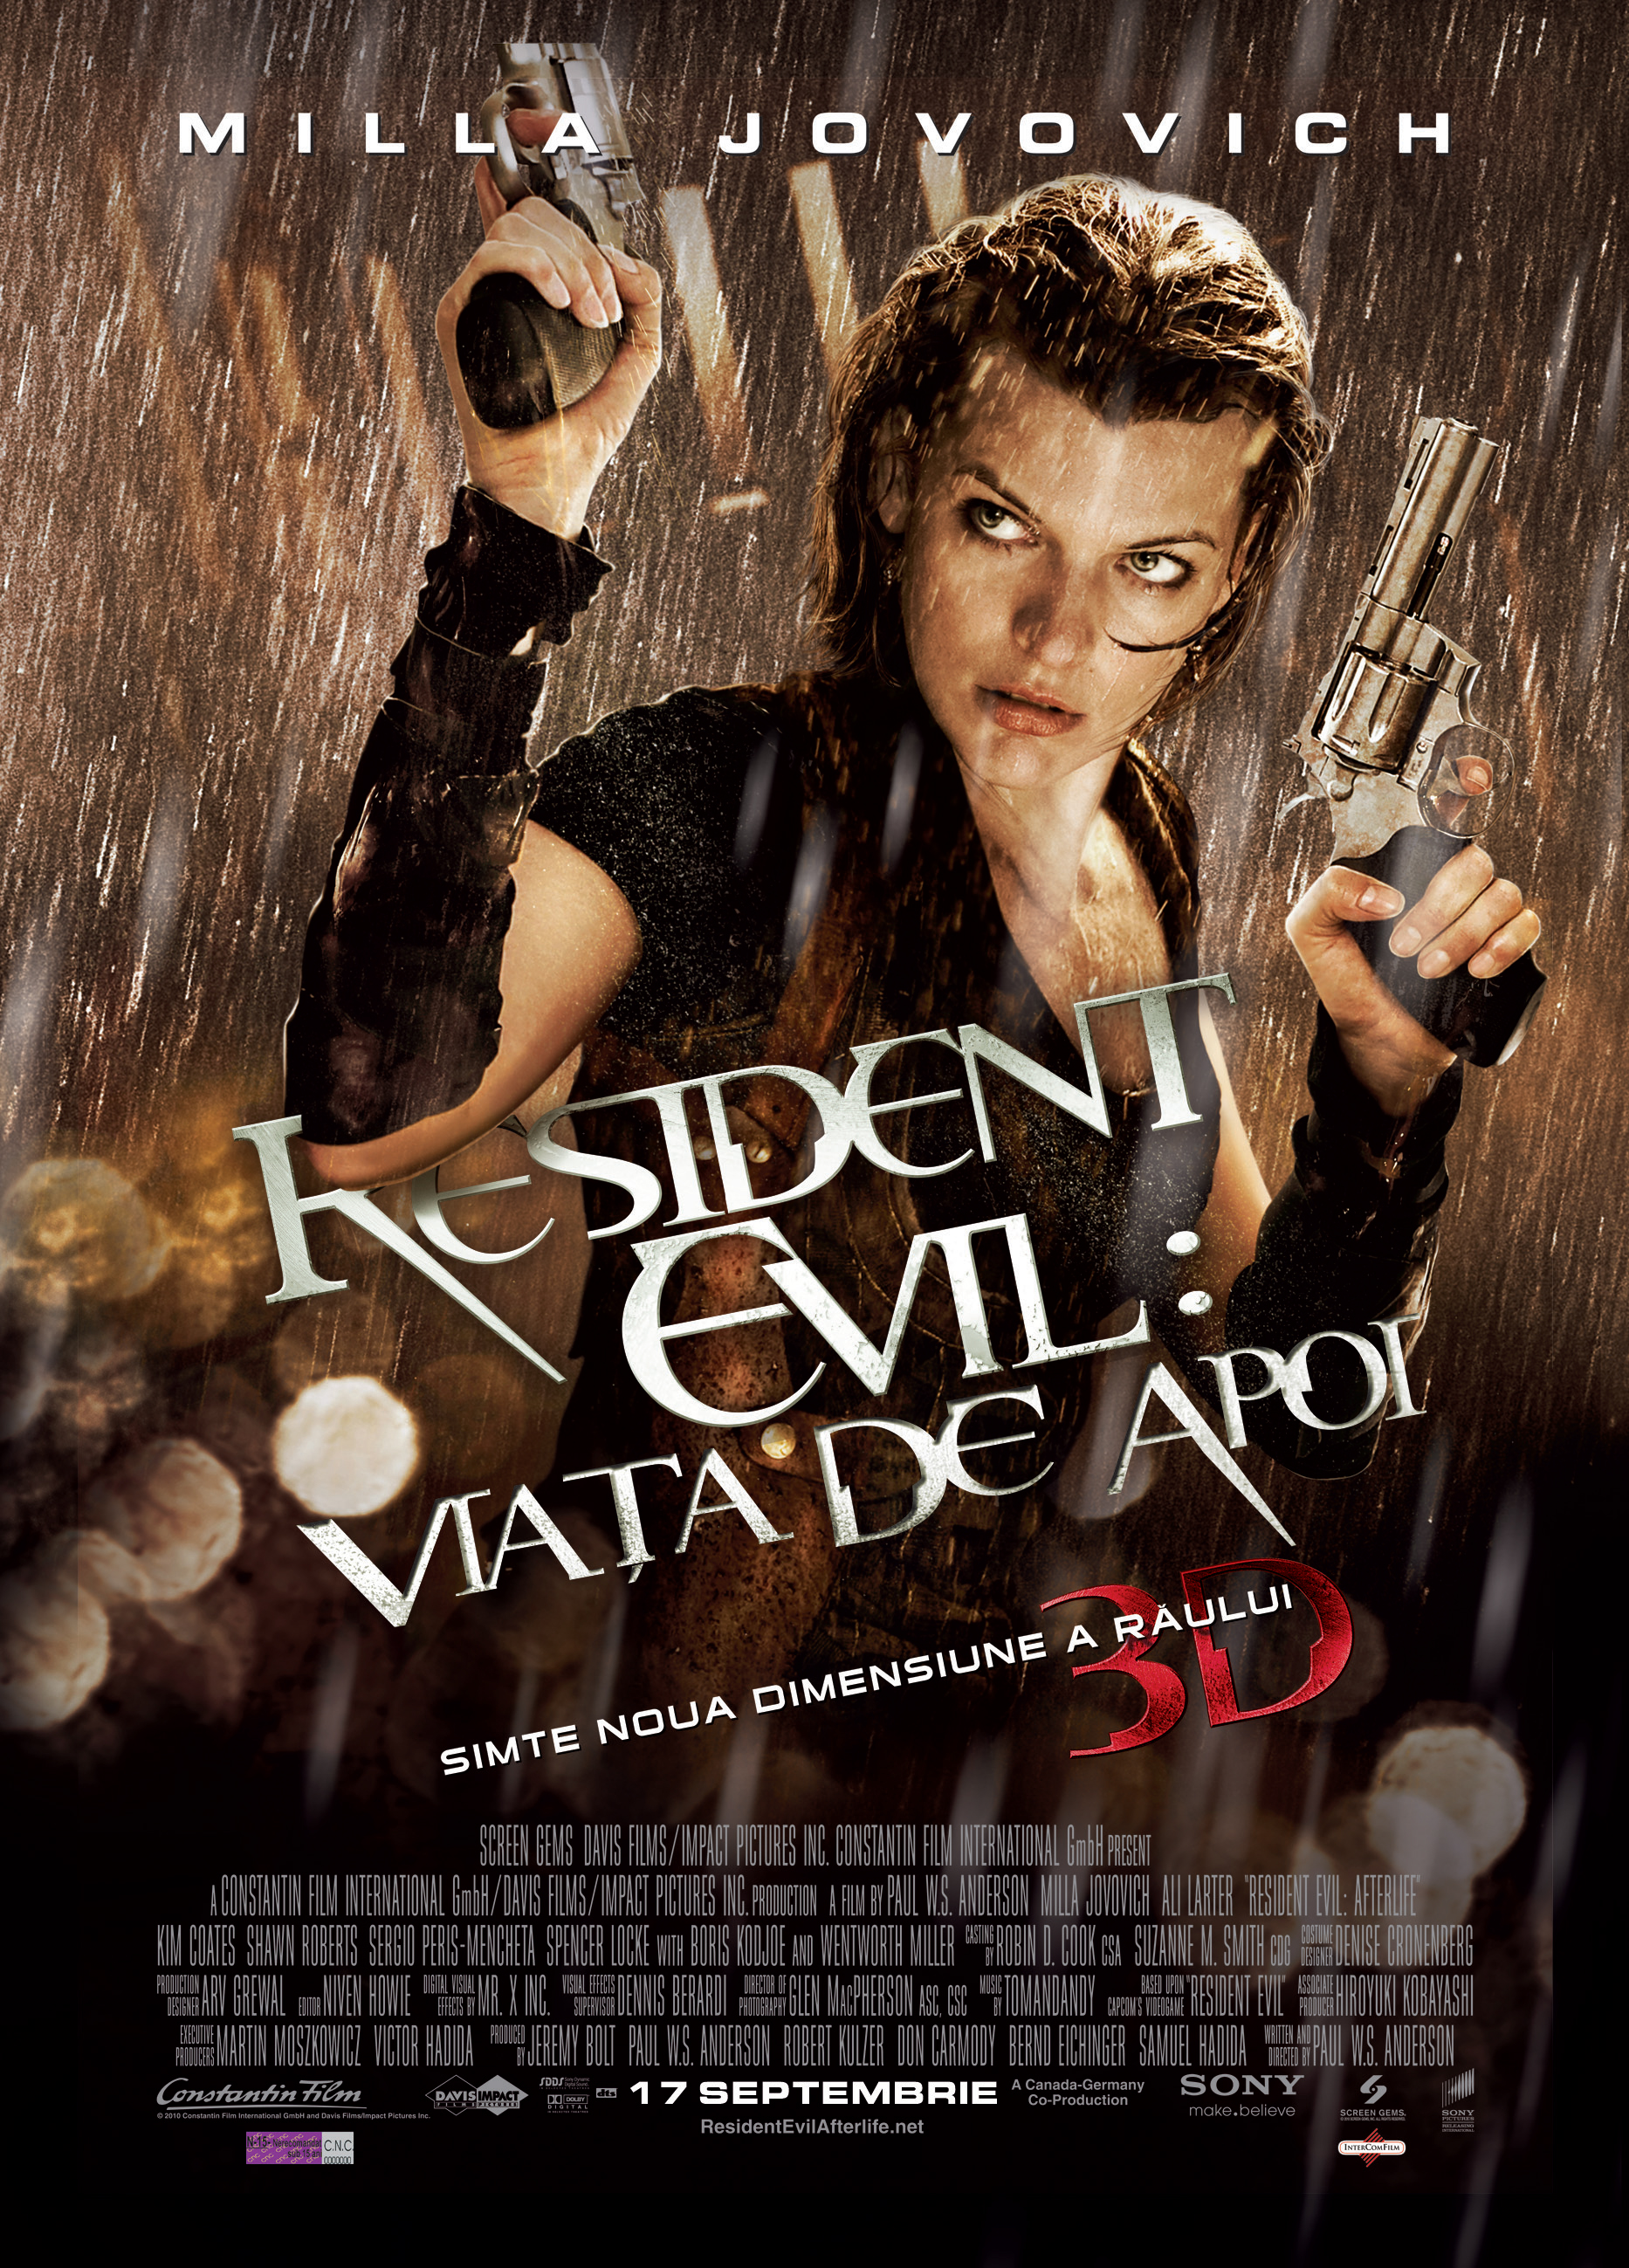 http://static.cinemagia.ro/img/db/movie/04/36/22/resident-evil-afterlife-728904l.jpg